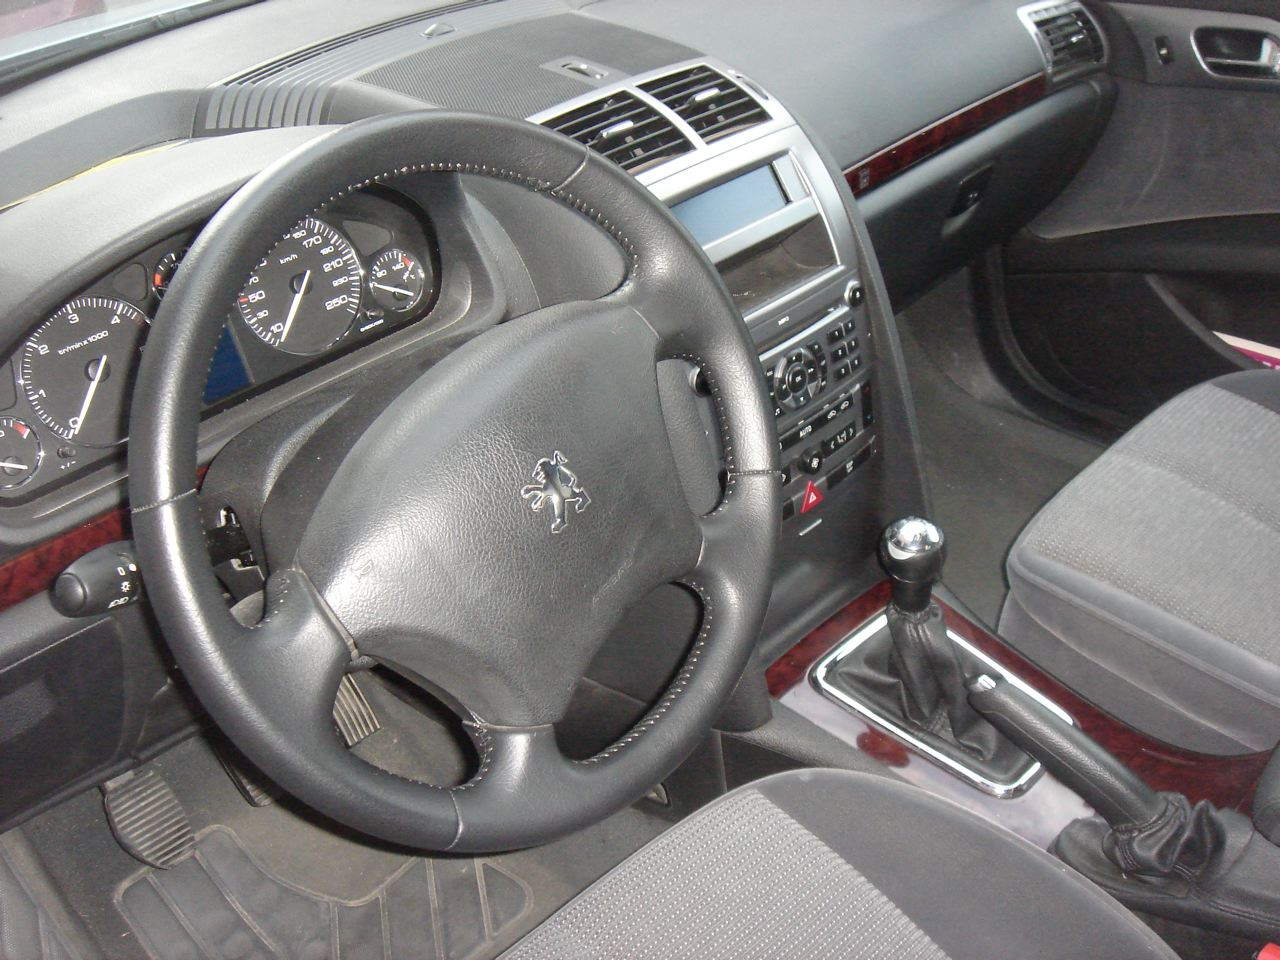 Essai peugeot 407 1 6 l hdi 110 ch passion automobile info for Interieur 406